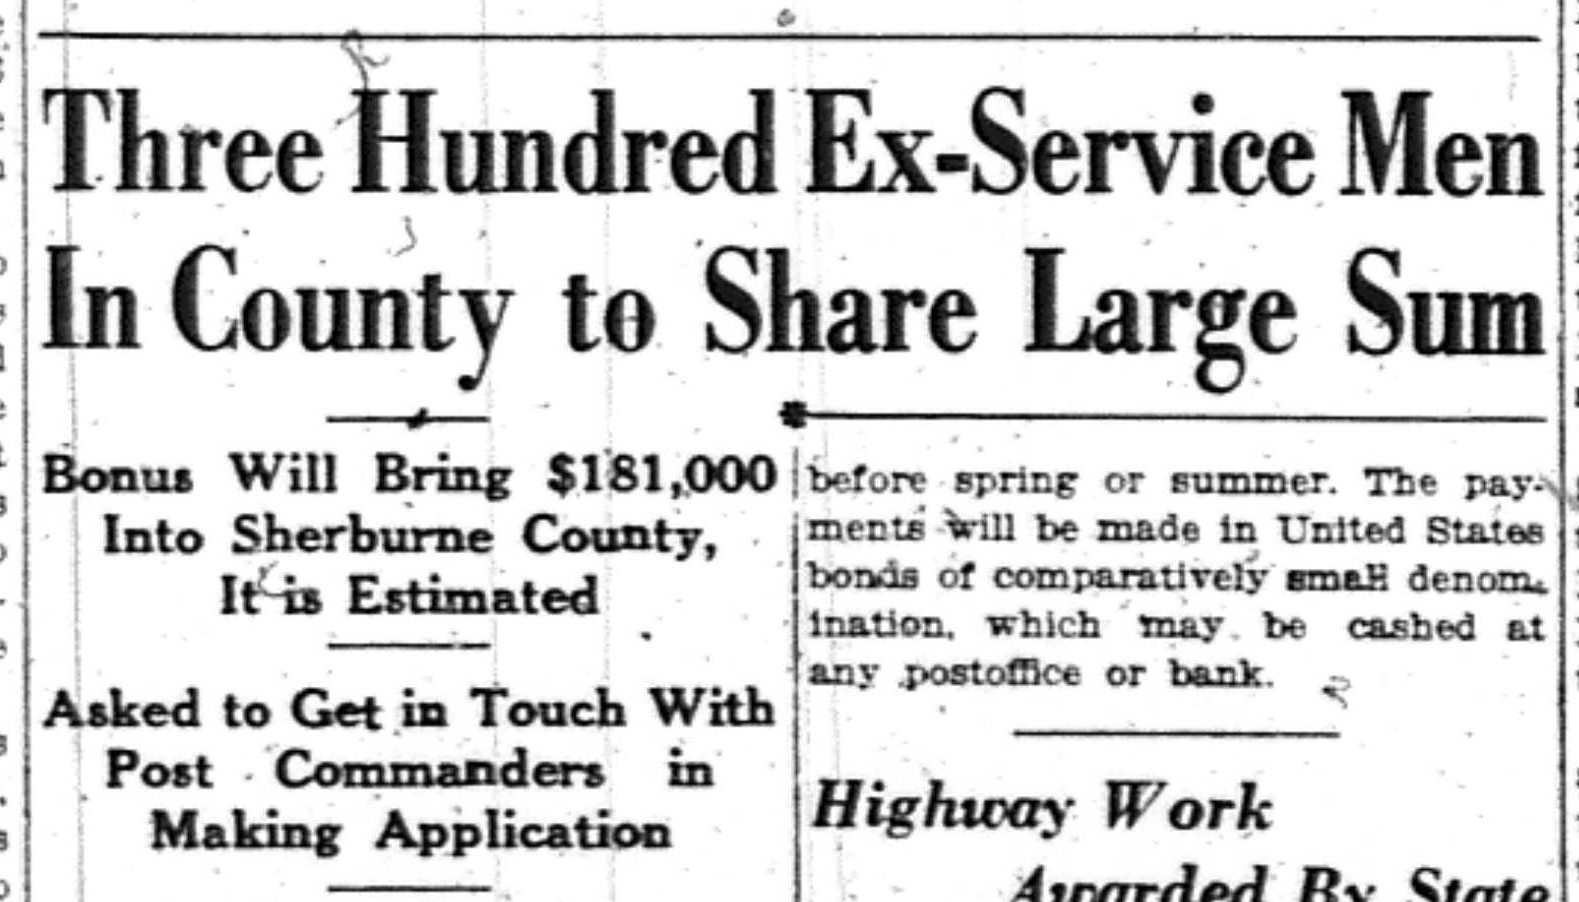 in 1936 in the midst of the economic crisis unemployment high and civilian conservation corps and the wpa maintaining projects in the county